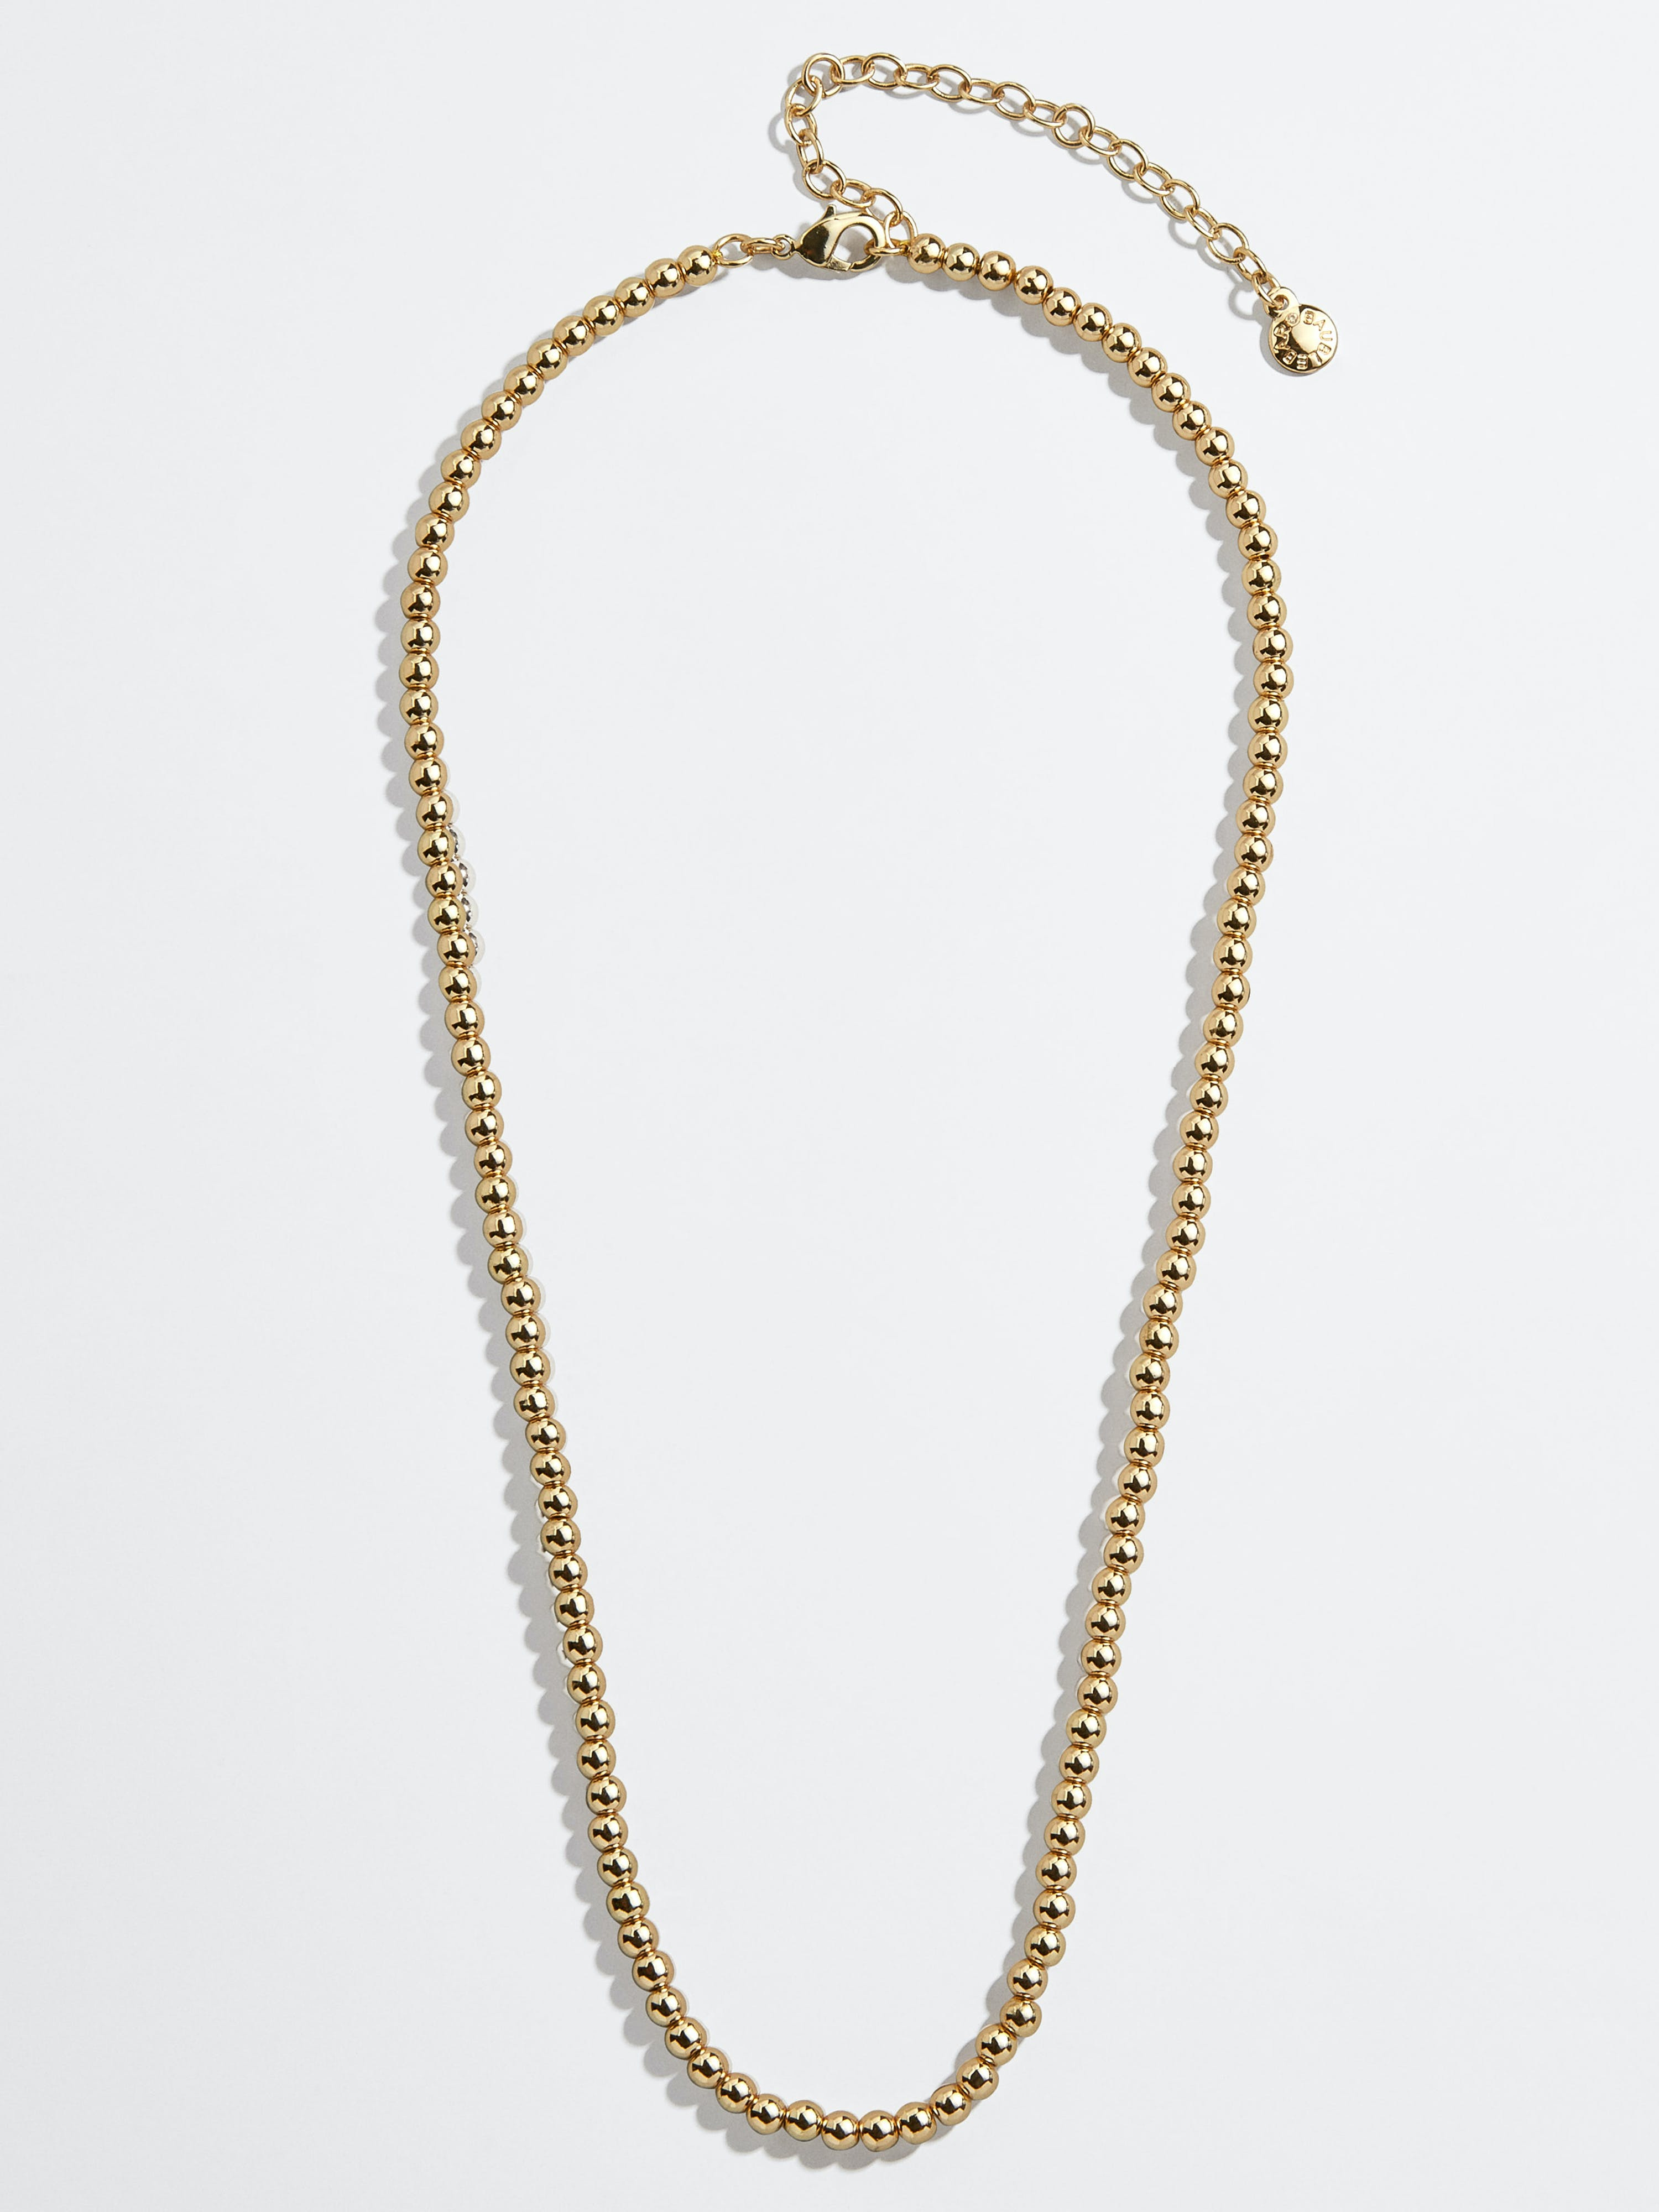 Baublebar SMALL PISA NECKLACE - GOLD